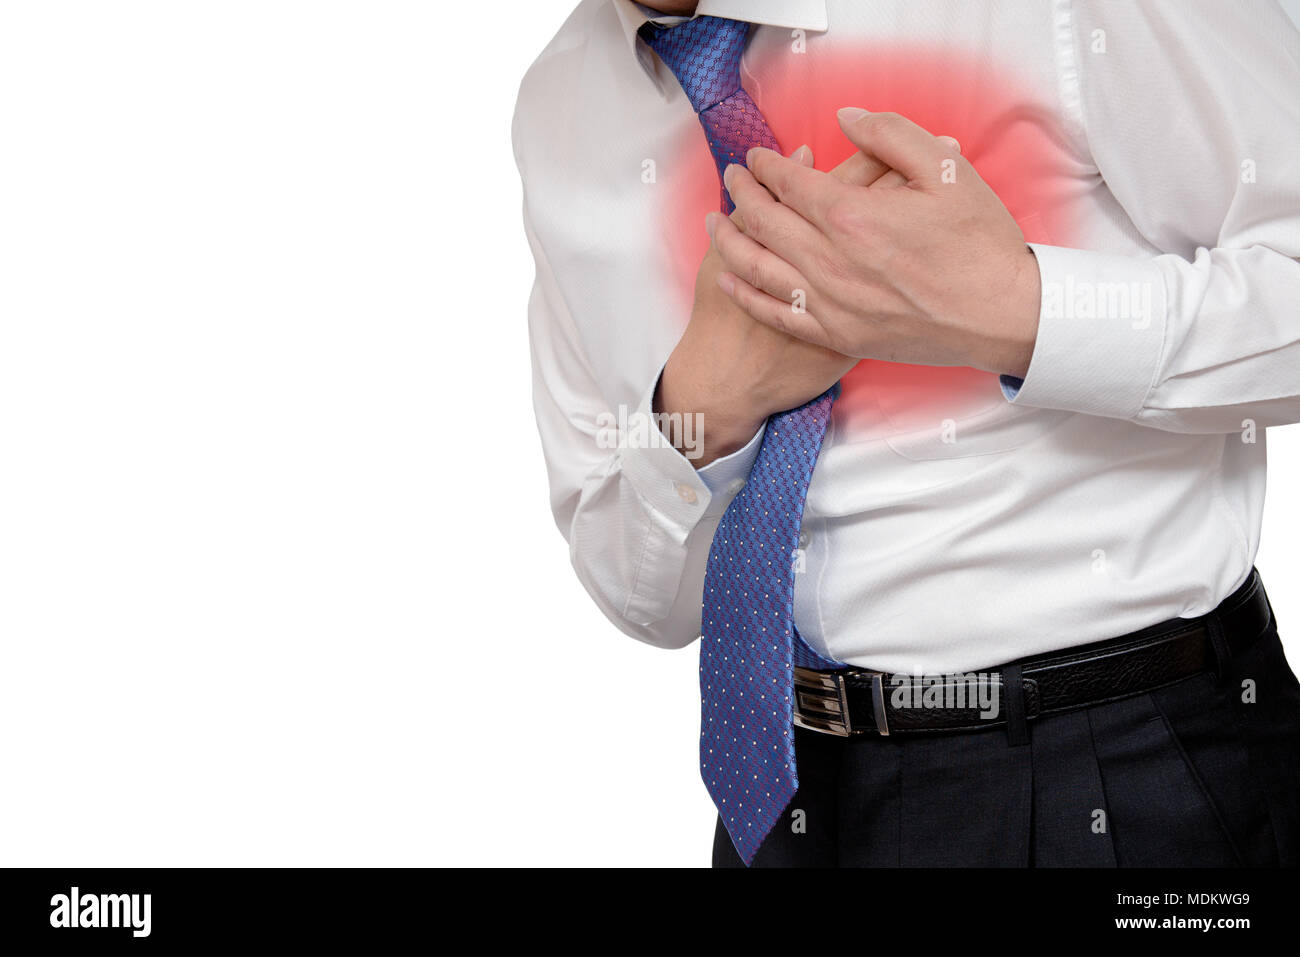 Businessman with heart attack. With copy space. Stock Photo